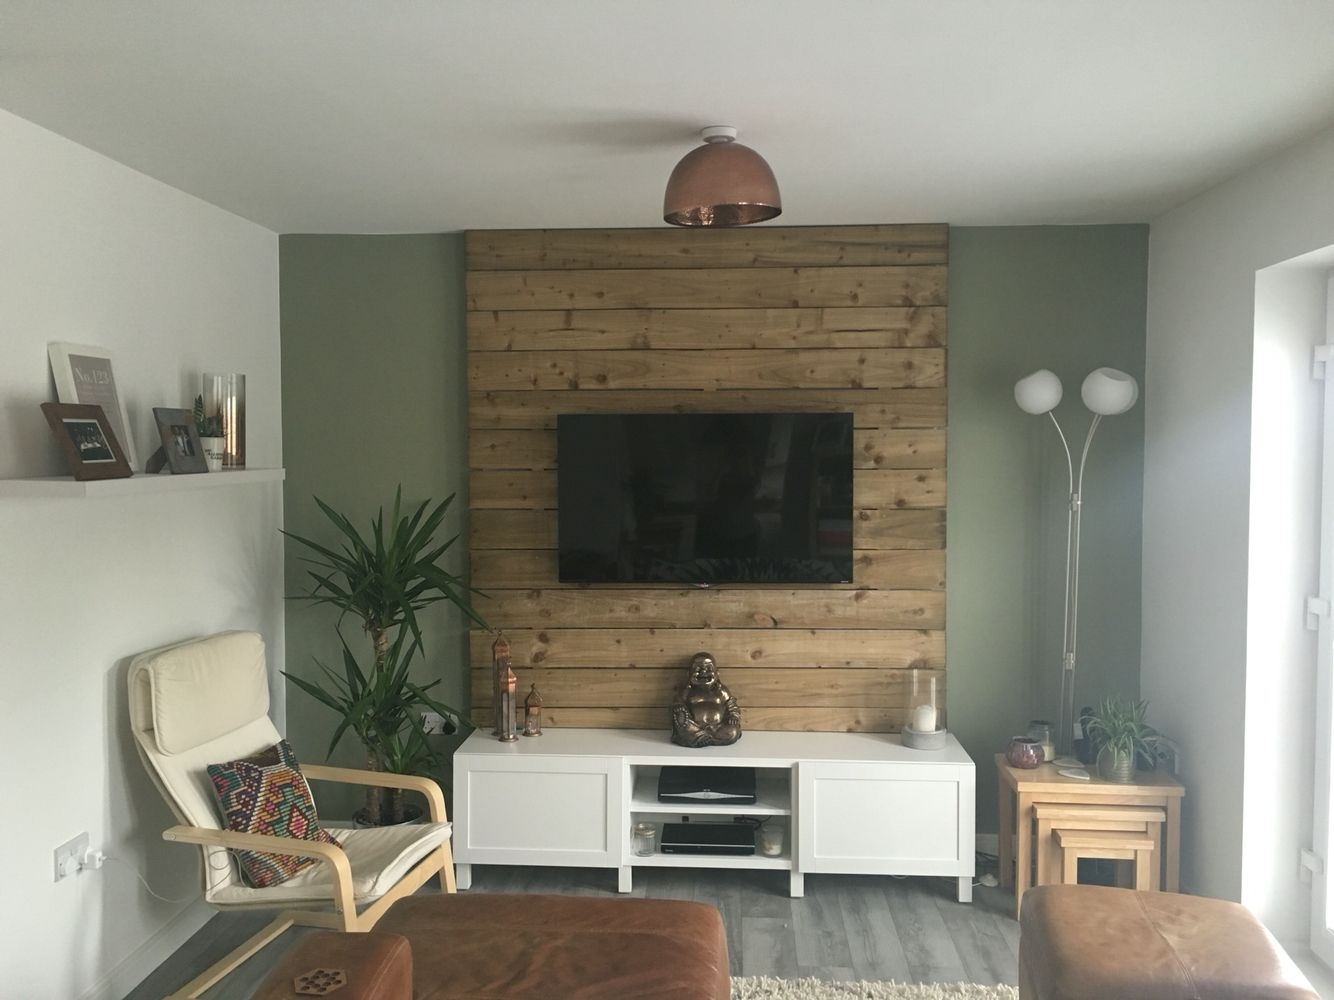 18 Chic And Modern Tv Wall Mount Ideas For Living Room | Tv Wall In 2017 Wall Accents With Pallets (View 1 of 15)